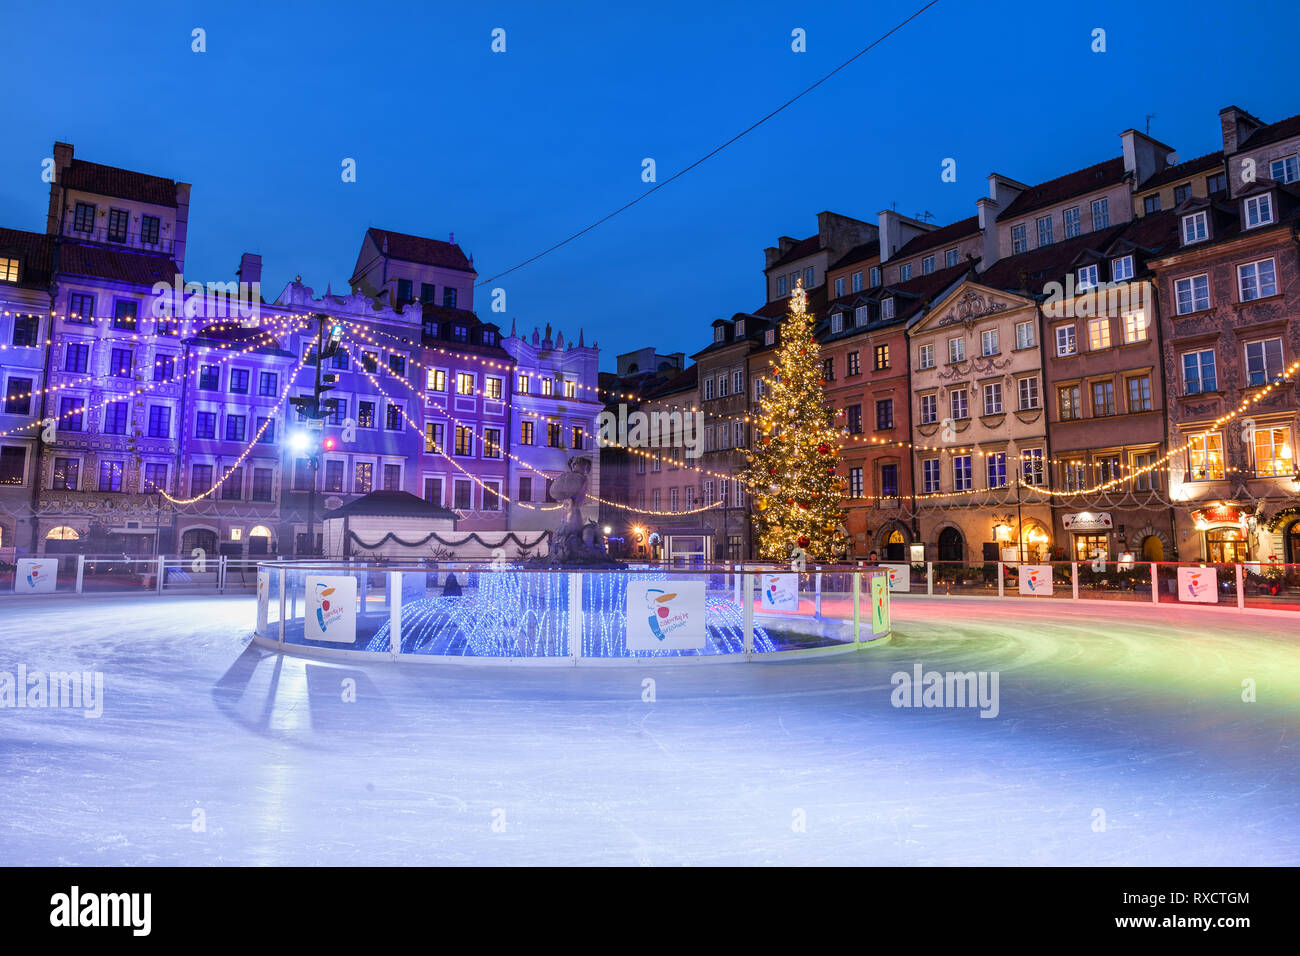 Ice skating rink on Old Town Square in Warsaw at night during Christmas time, capital city of Poland. - Stock Image